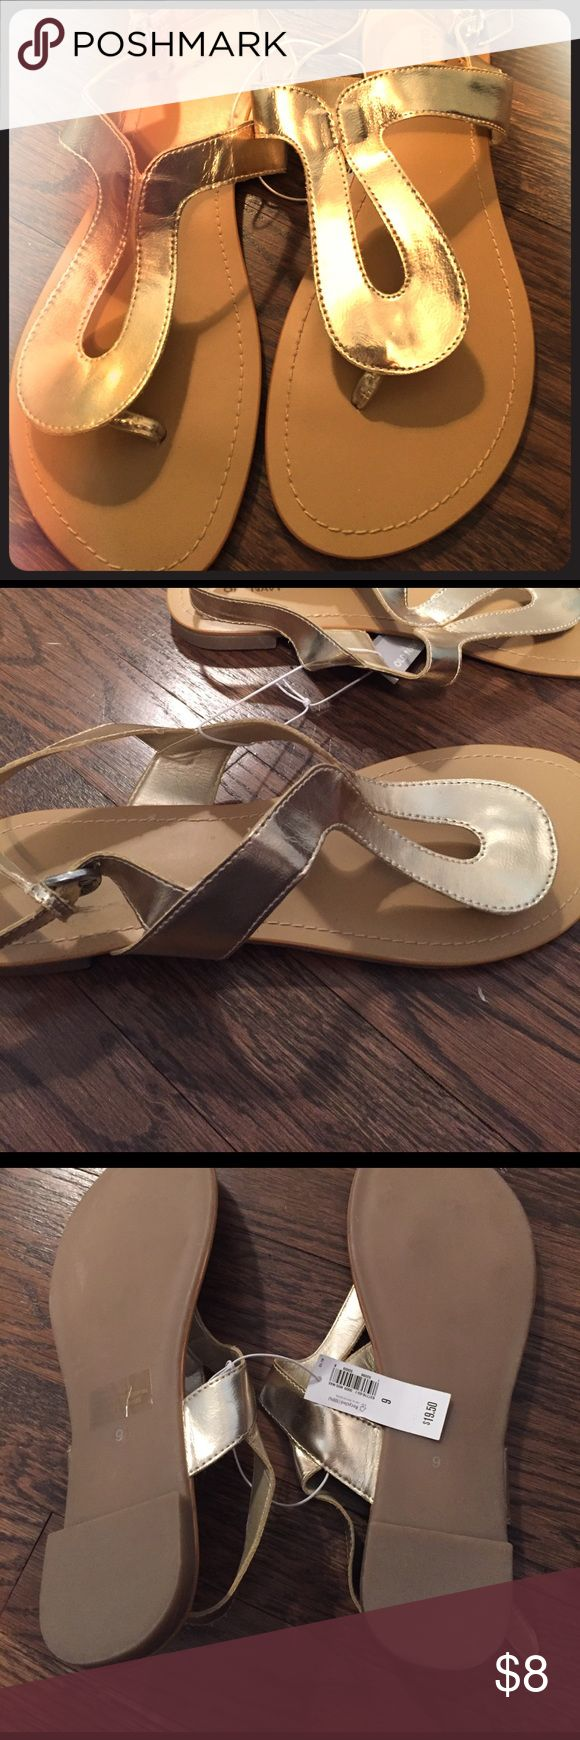 NWT old navy gold flat sandals Summer is coming! Never worn! Make me an offer Old Navy Shoes Sandals